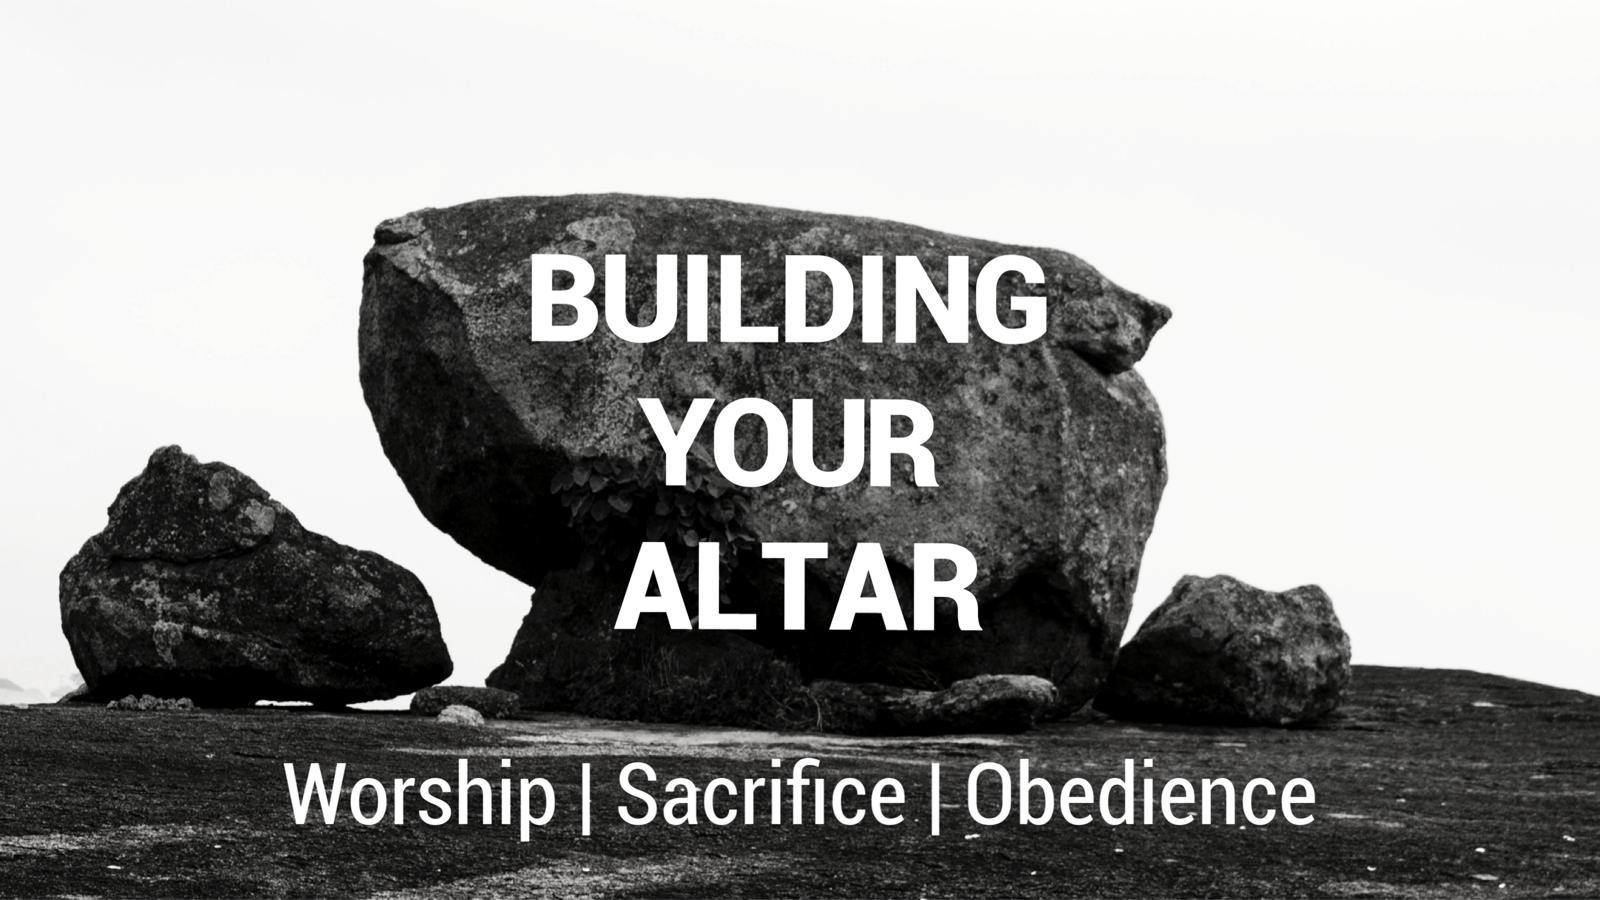 Building Your Altar